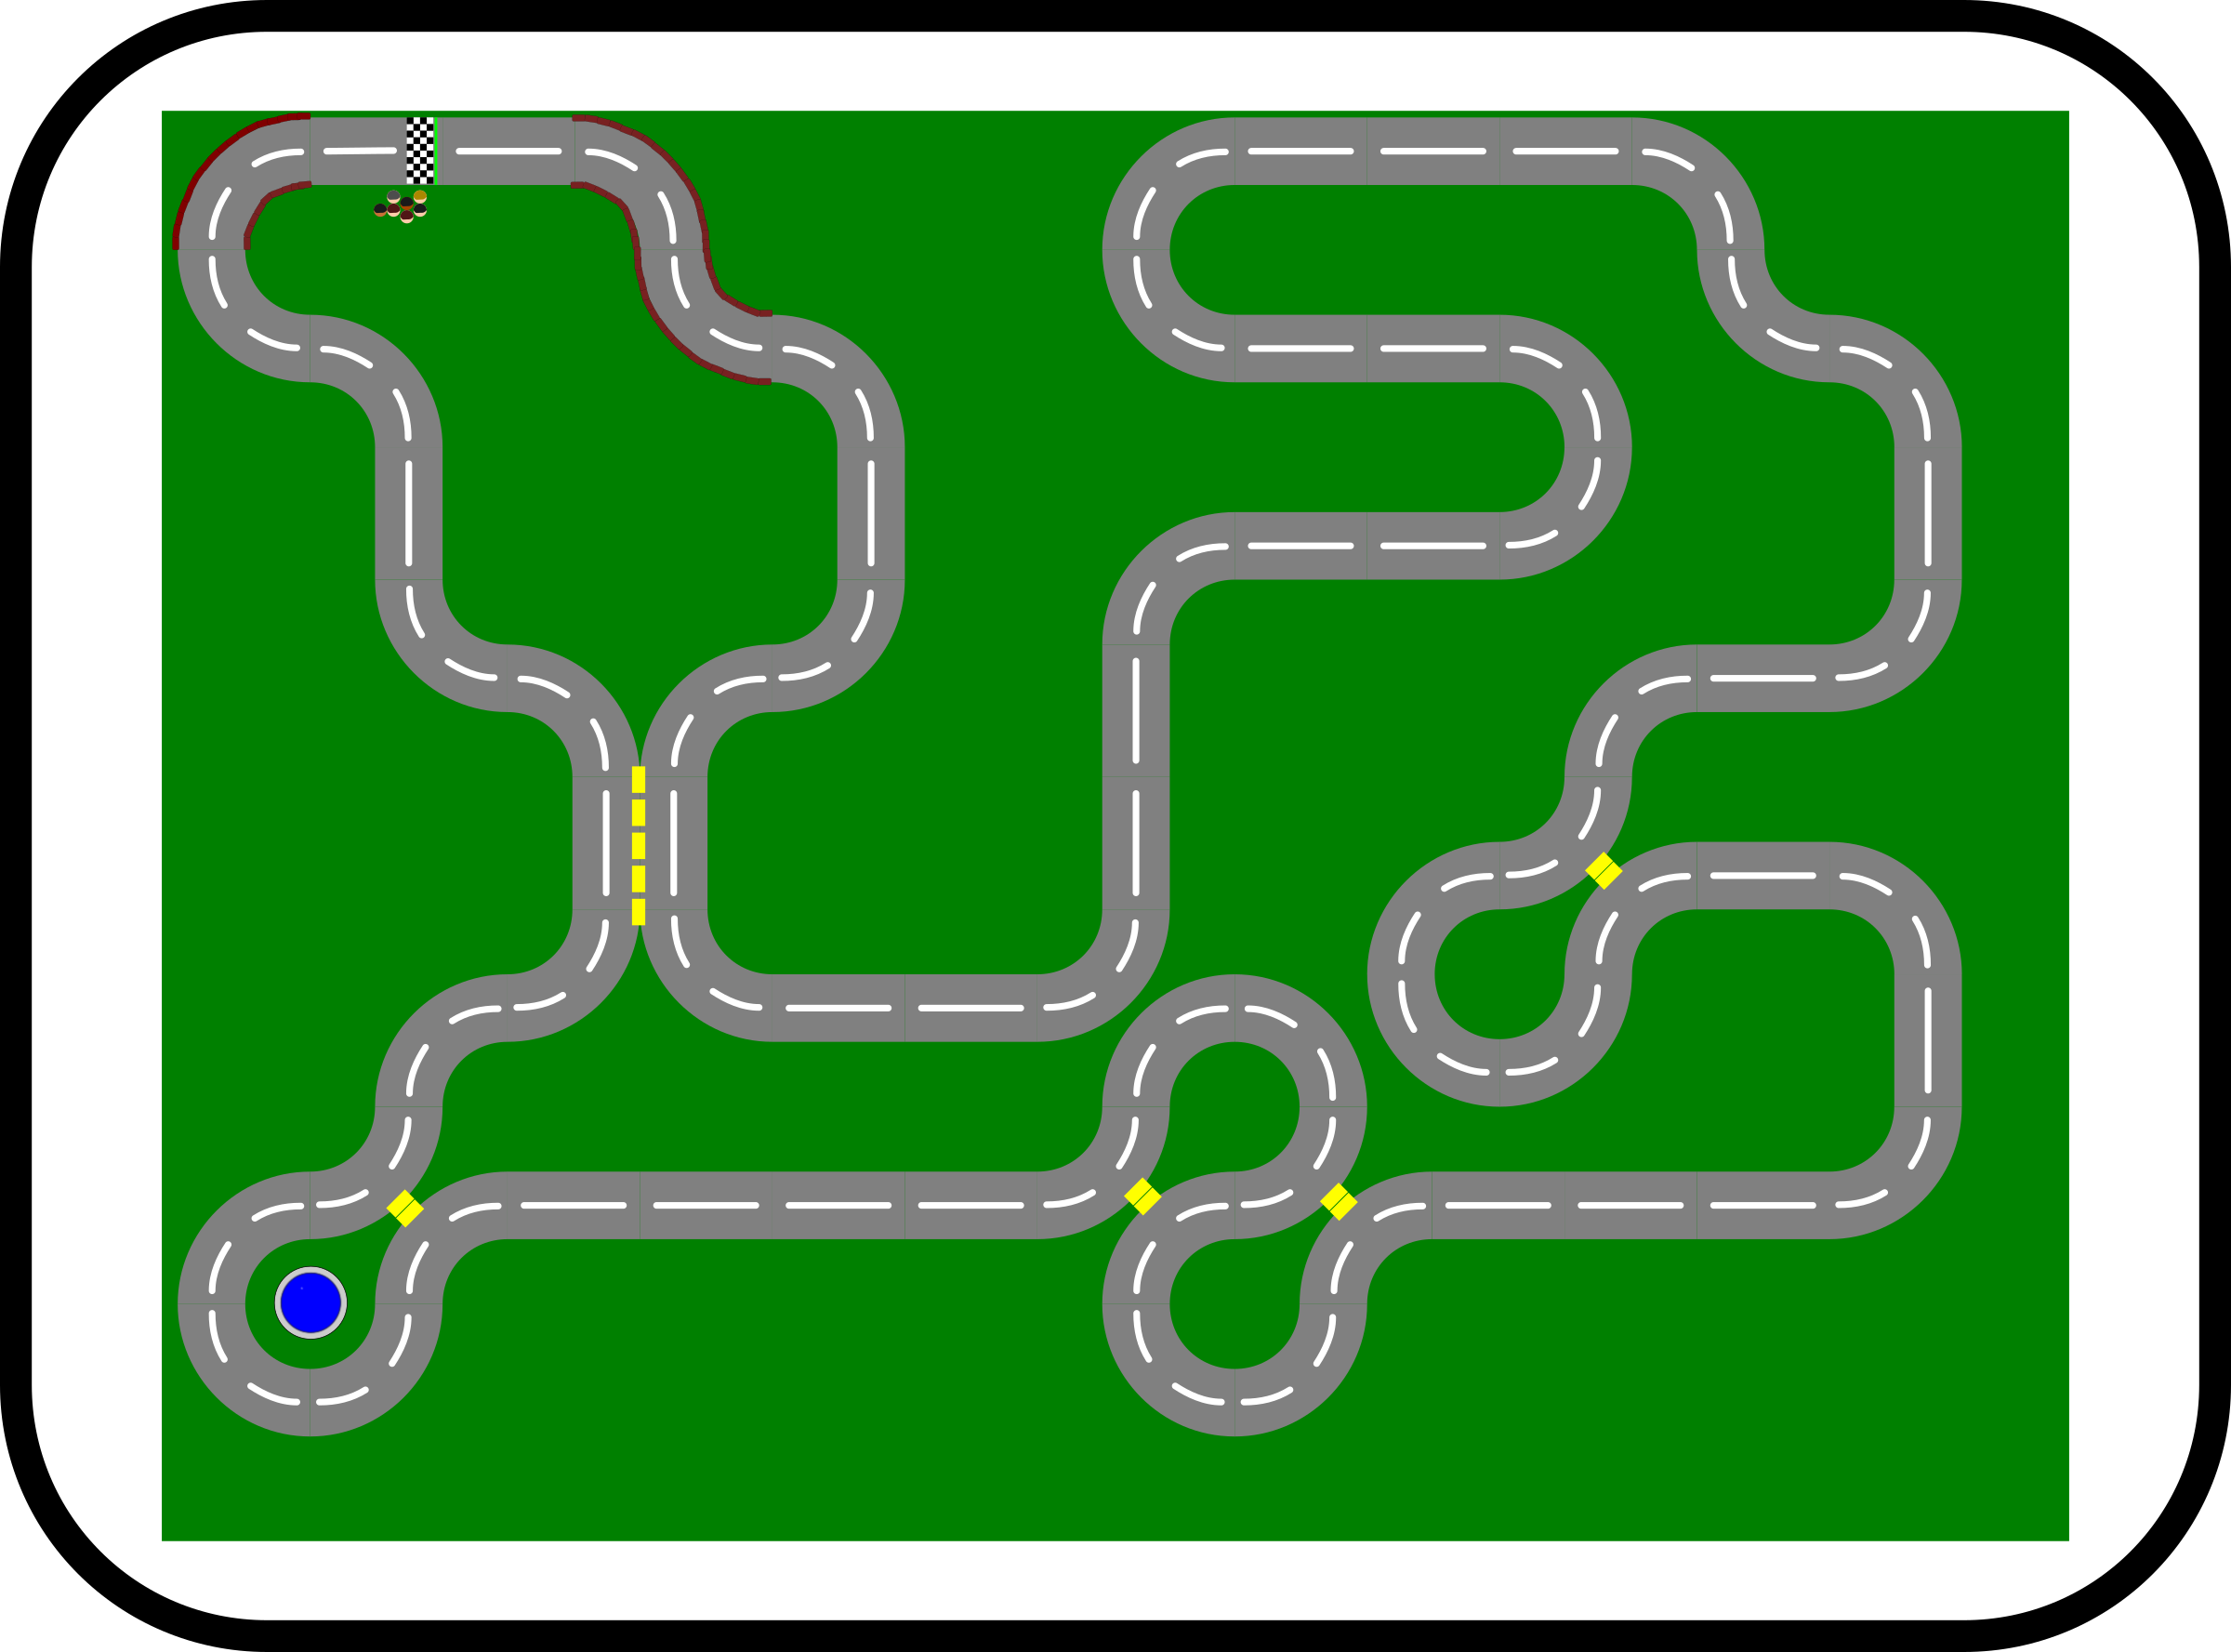 Wacky Racer Track Design by TomBrough